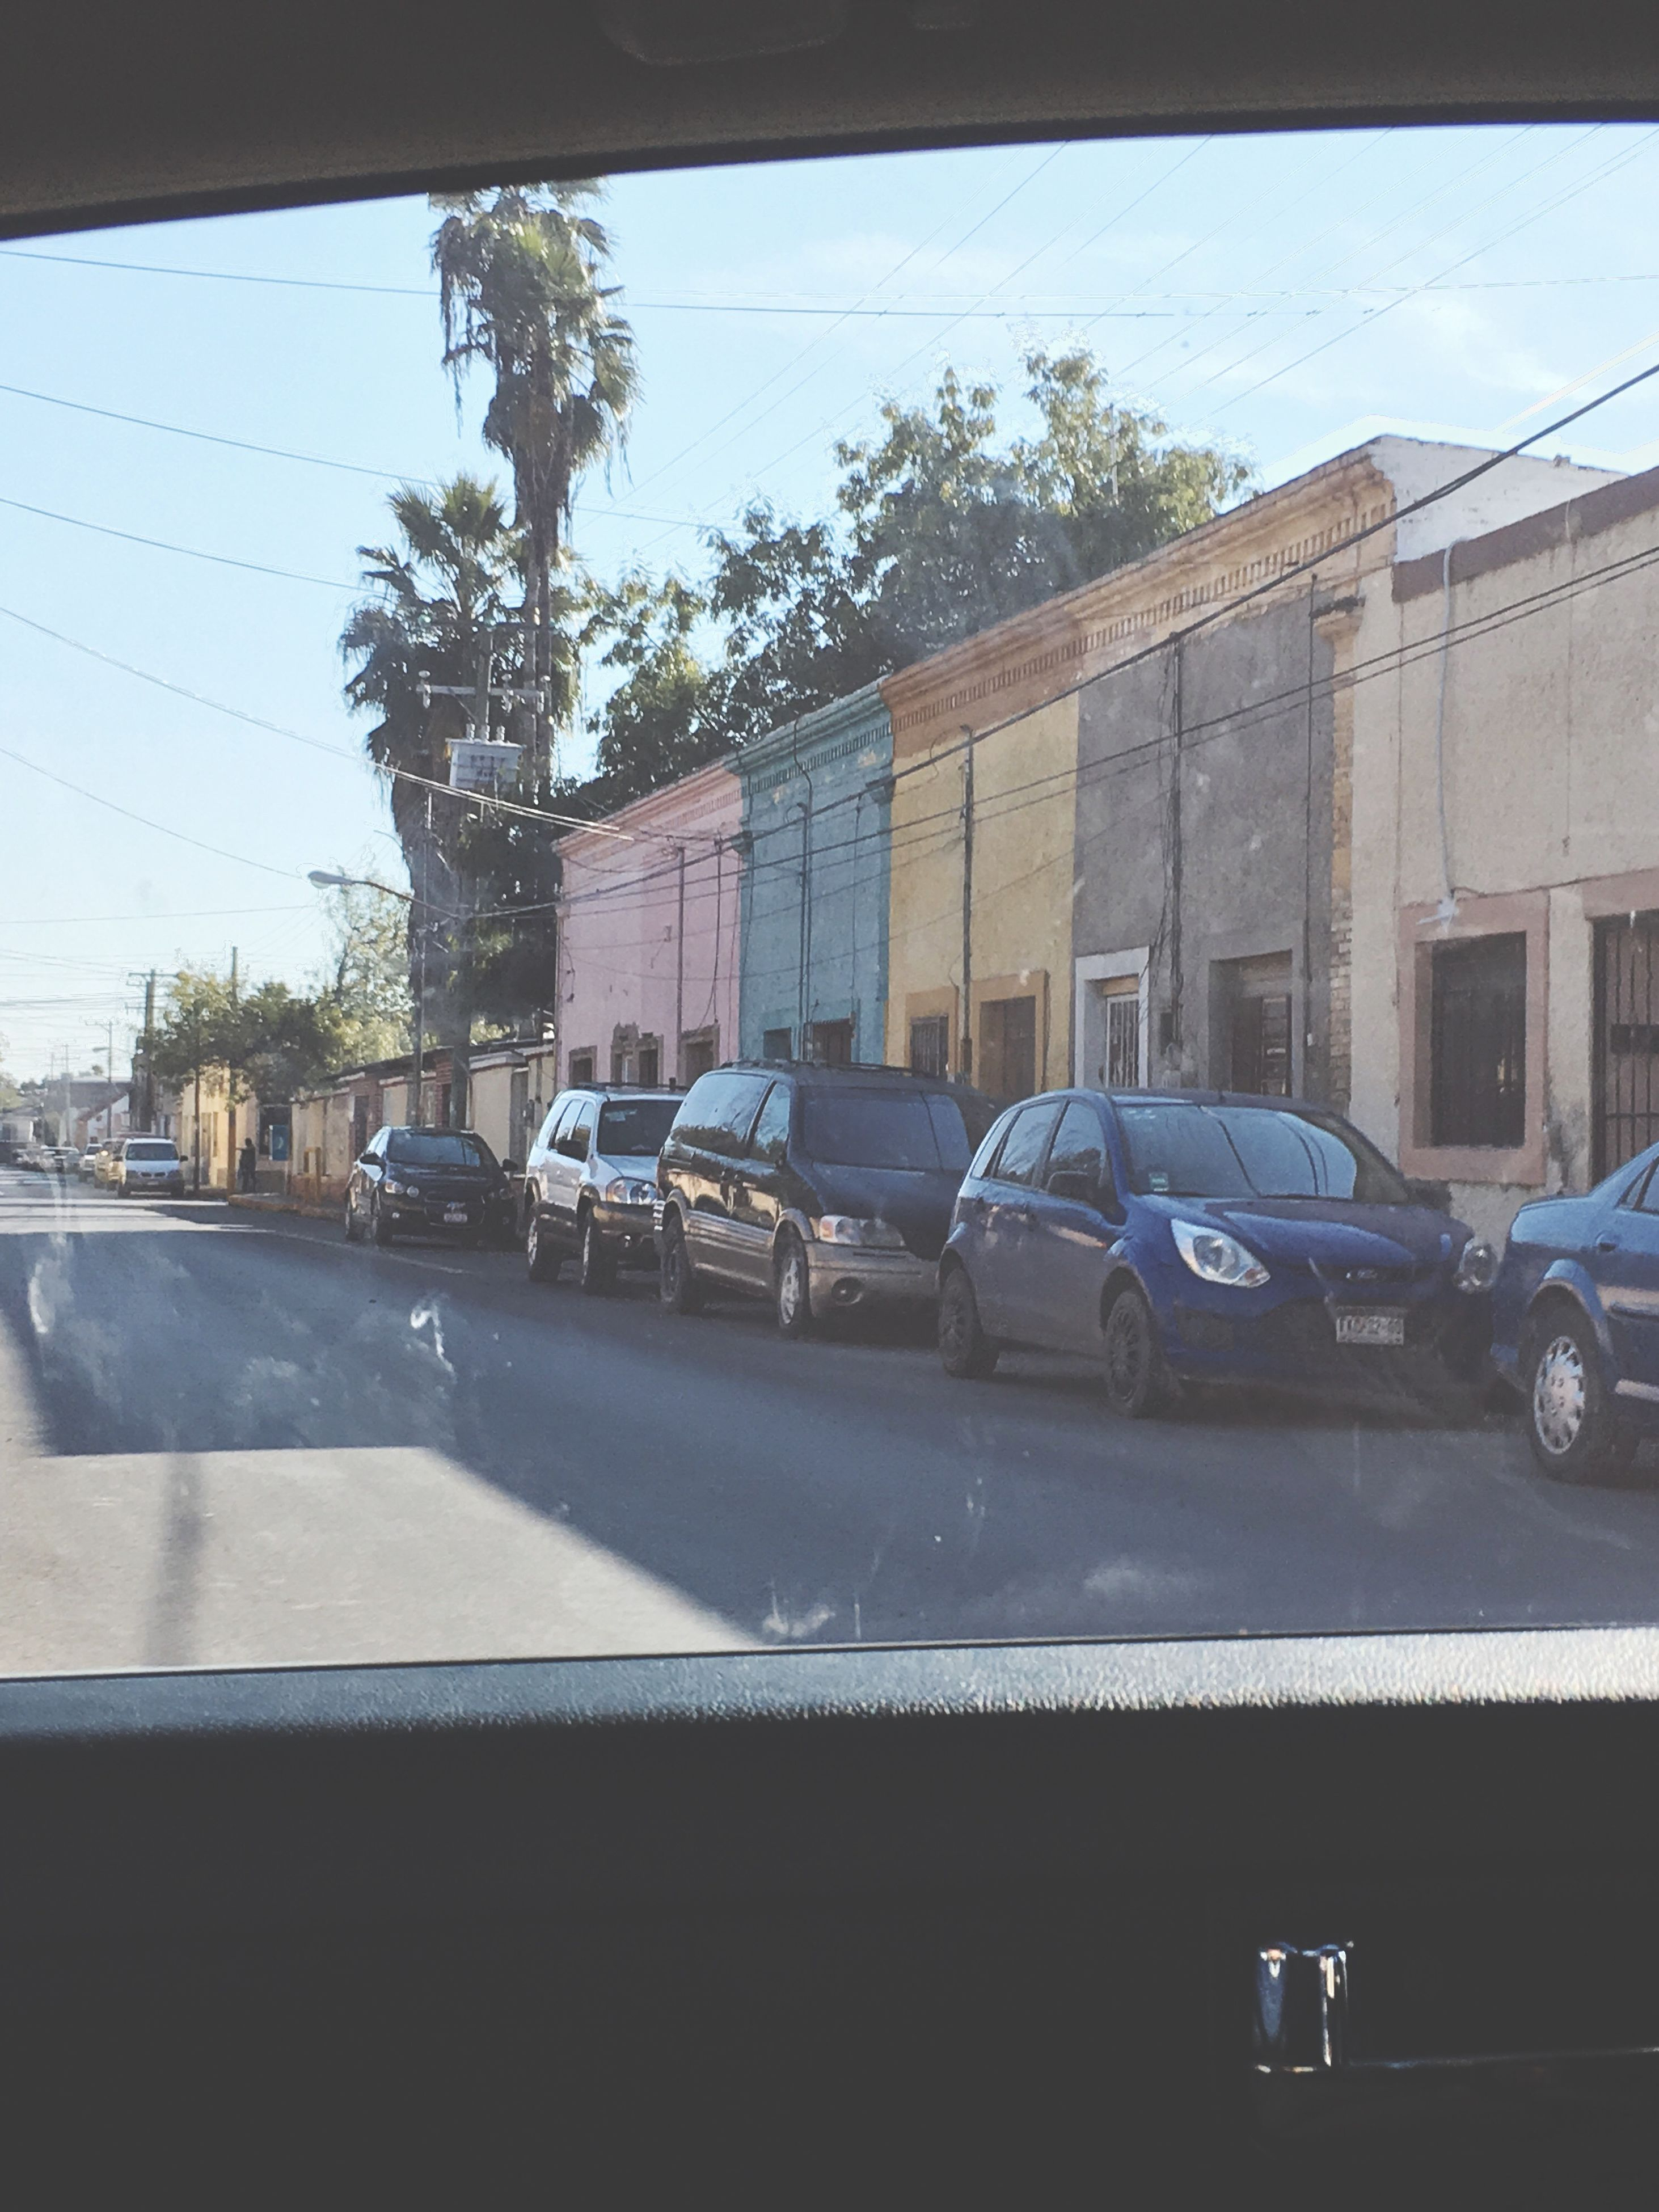 car, transportation, mode of transport, land vehicle, tree, building exterior, street, sunlight, city, built structure, architecture, parking, day, outdoors, road, no people, stationary, vehicle mirror, police car